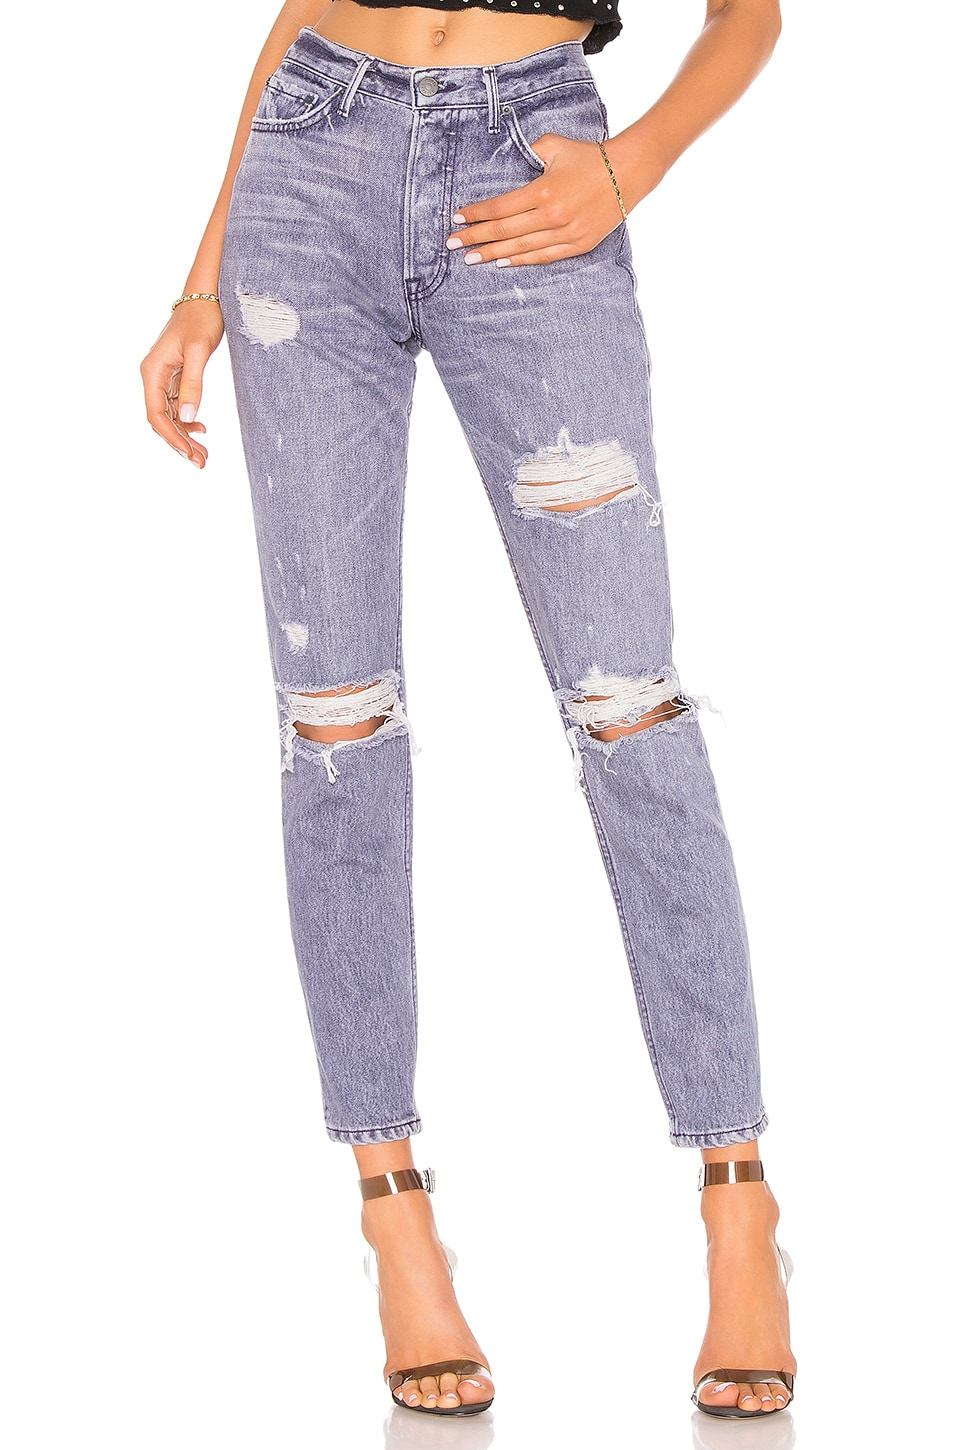 GRLFRND Karolina High-Rise Skinny Crop Jean in You Got The Look